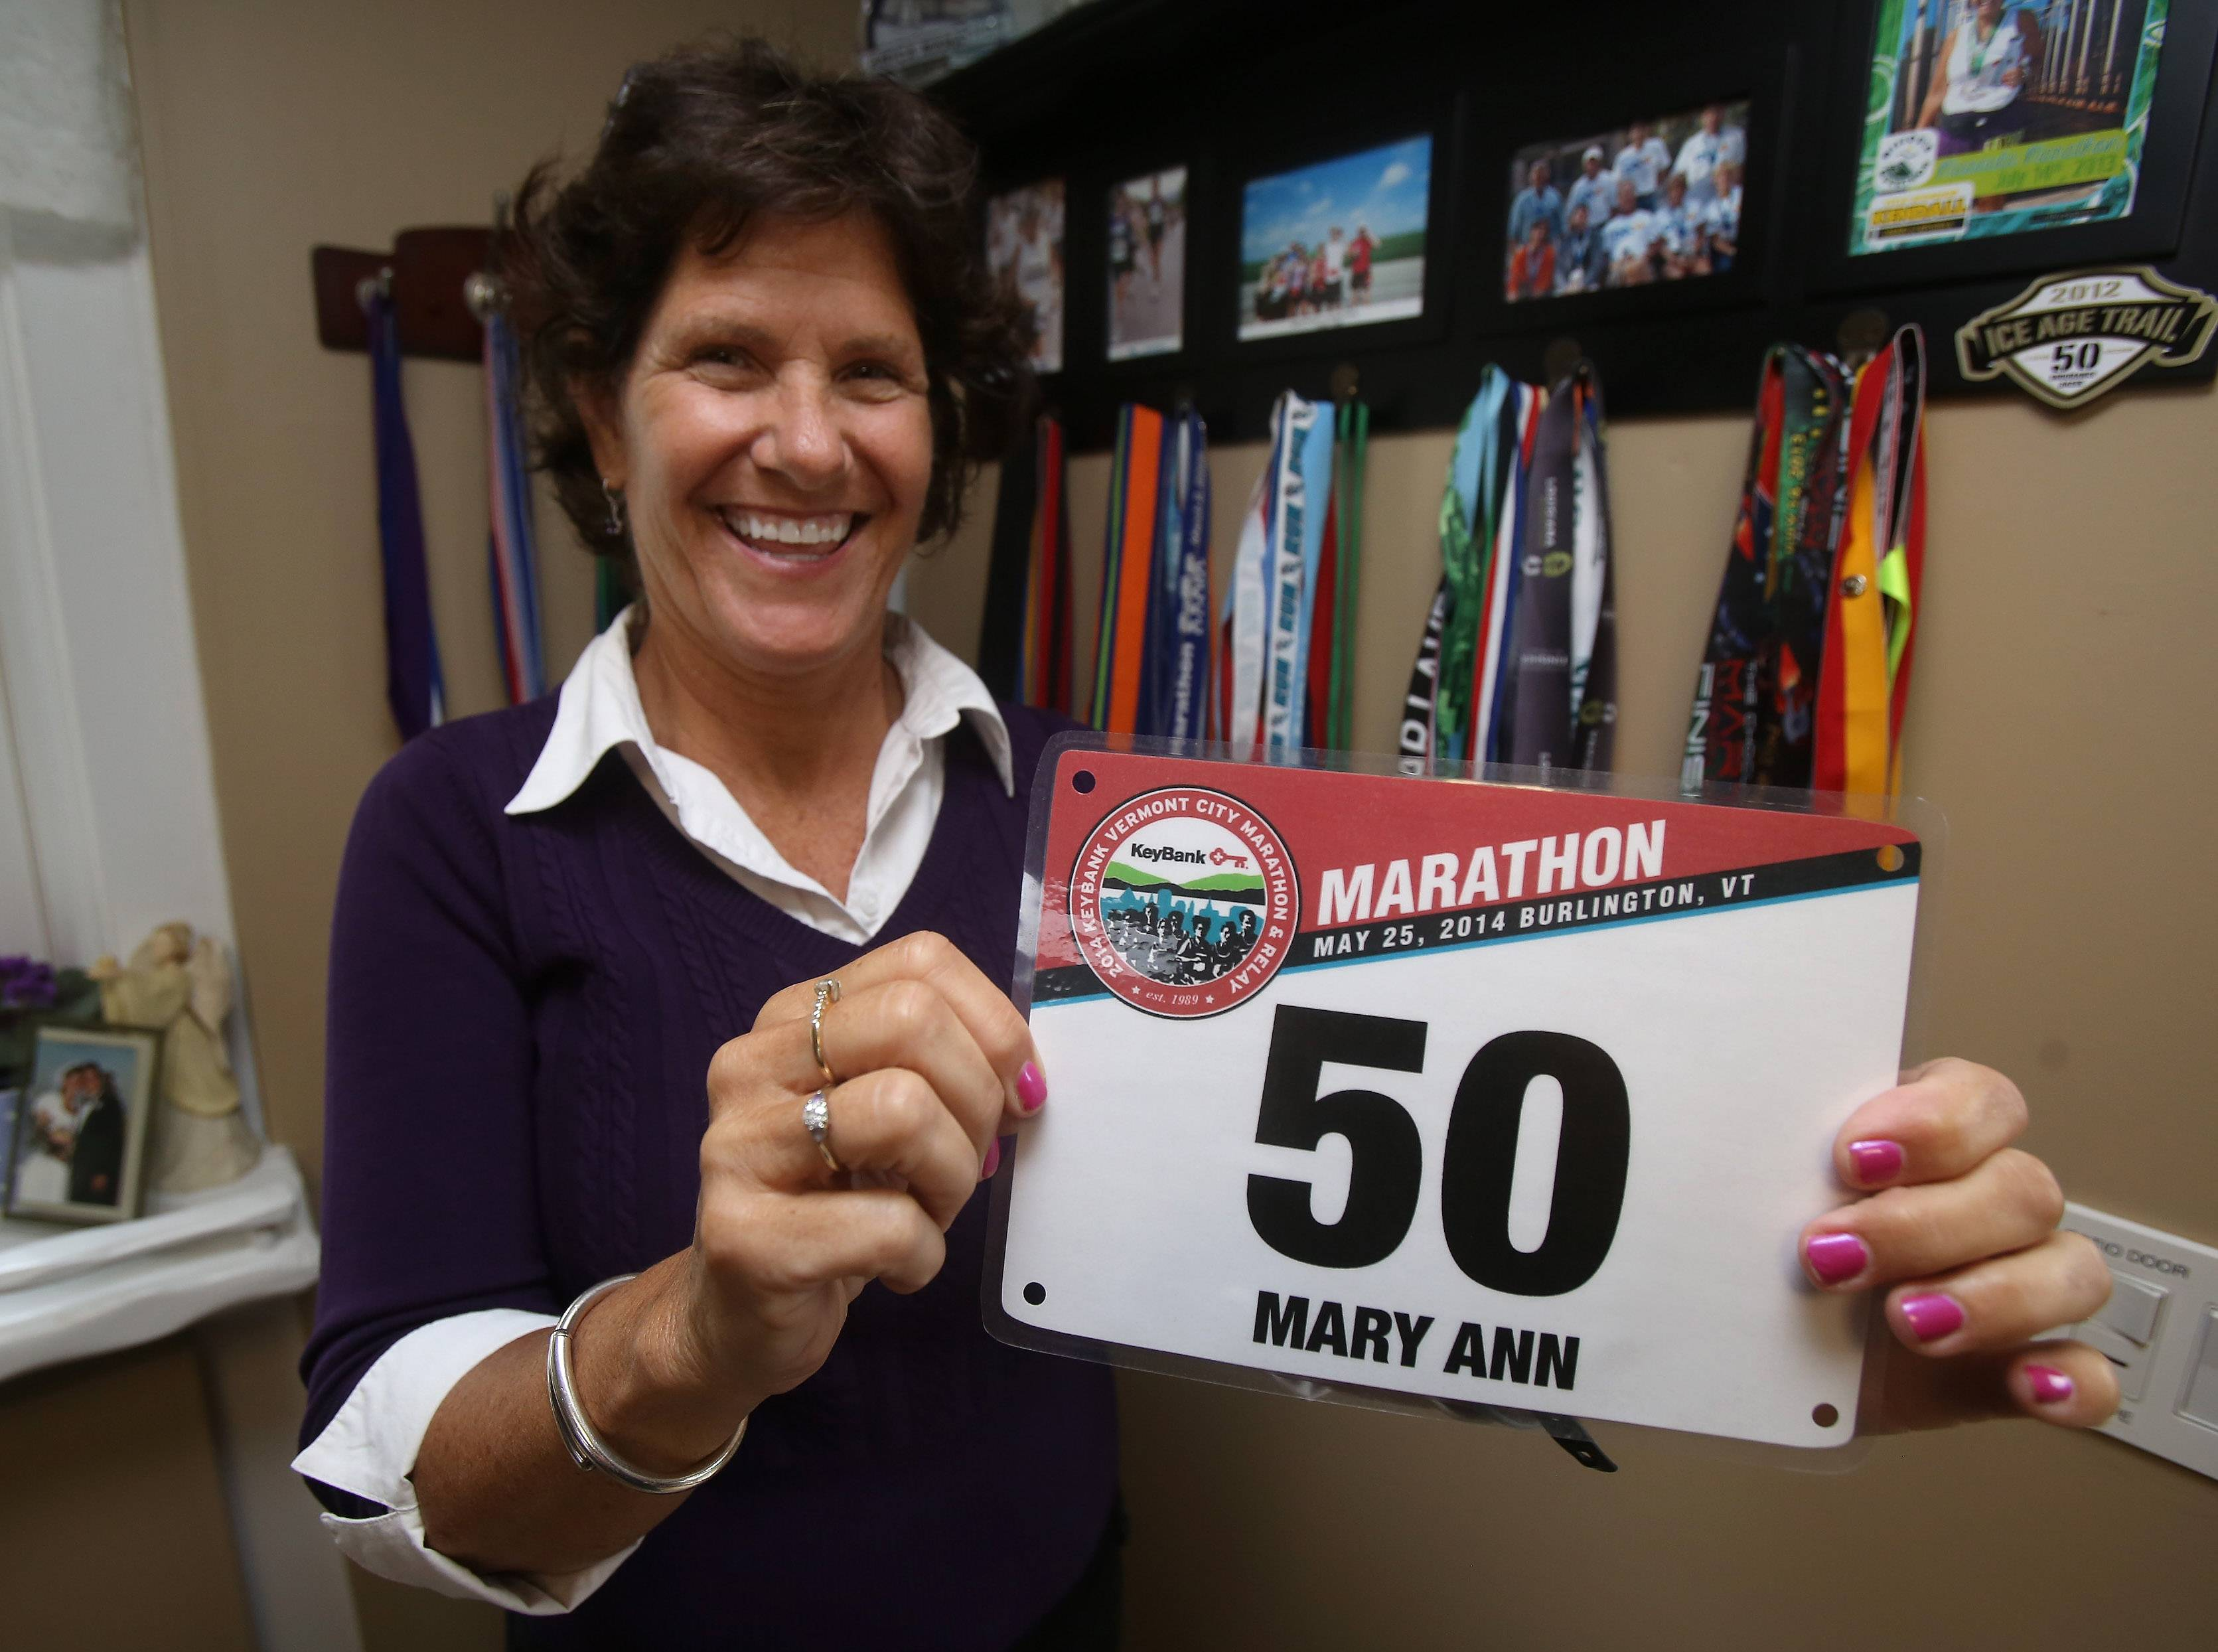 Libertyville runner Mary Ann Zemla displays the runner's number she had in her last race in Vermont. Zemla has run marathons in all 50 states, 74 marathons in all, and she's run the Chicago Marathon 13 times.